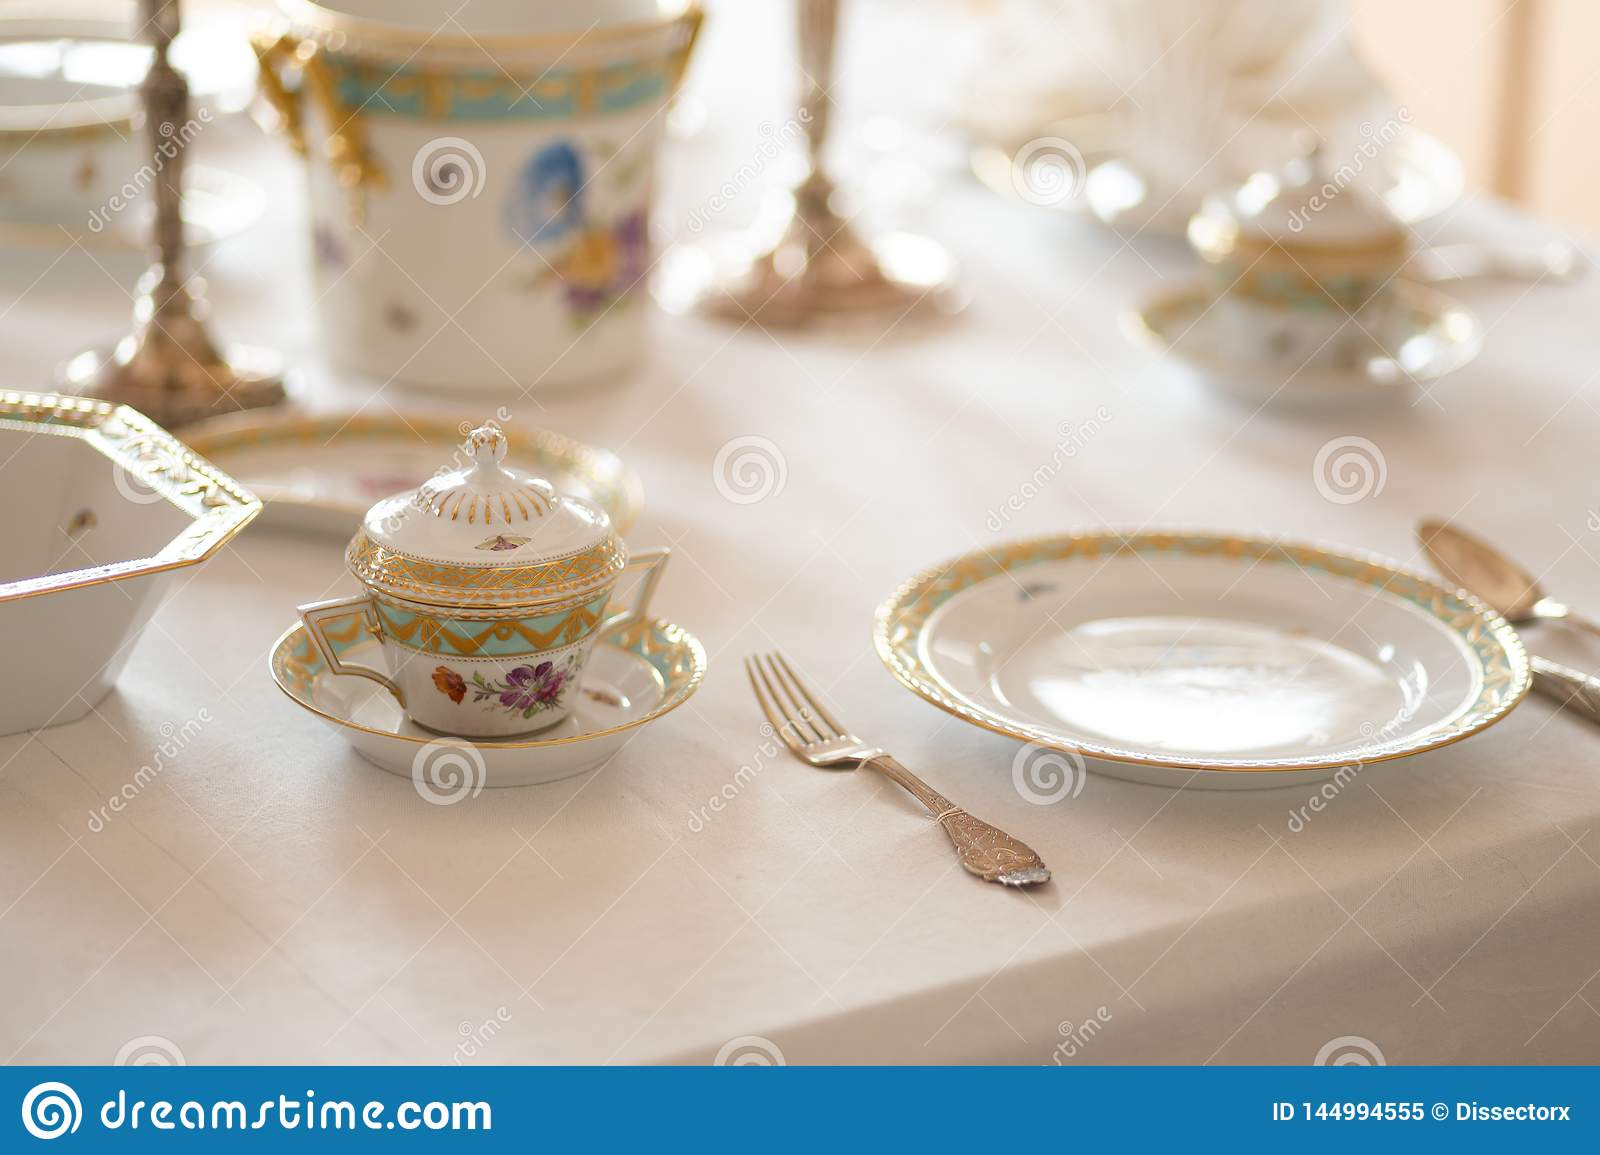 Wedding Table Decoration With Expensive Retro Royal Majesty